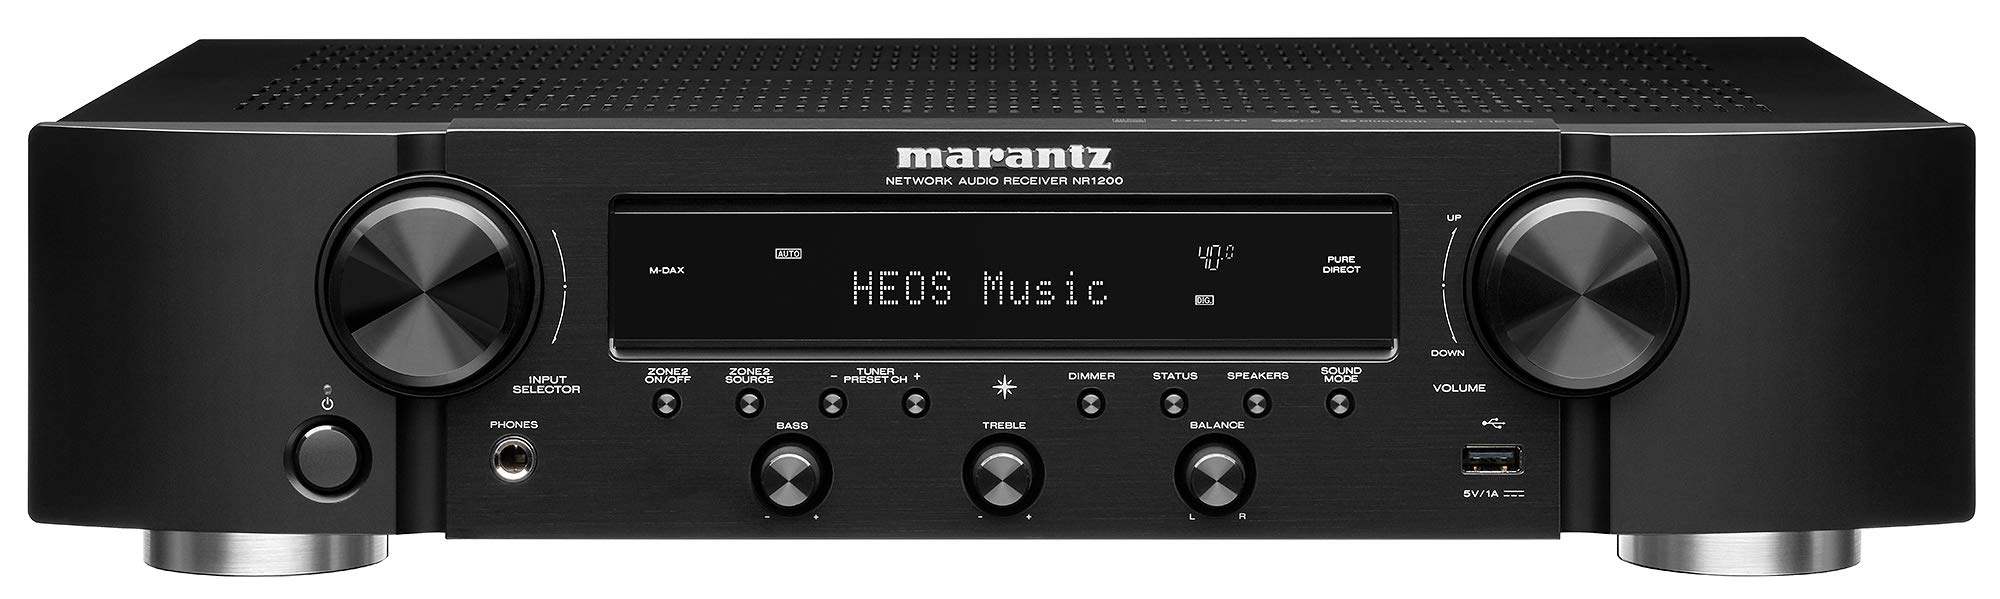 Marantz NR1200 AV Receiver (2019 Model) | 2-Channel Home Theater Amp | Wi-Fi, Bluetooth, Heos + Alexa | Immersive Movies, Music & Gaming | Auto Low Latency Mode for Xbox One | Smart Home Automation by Marantz